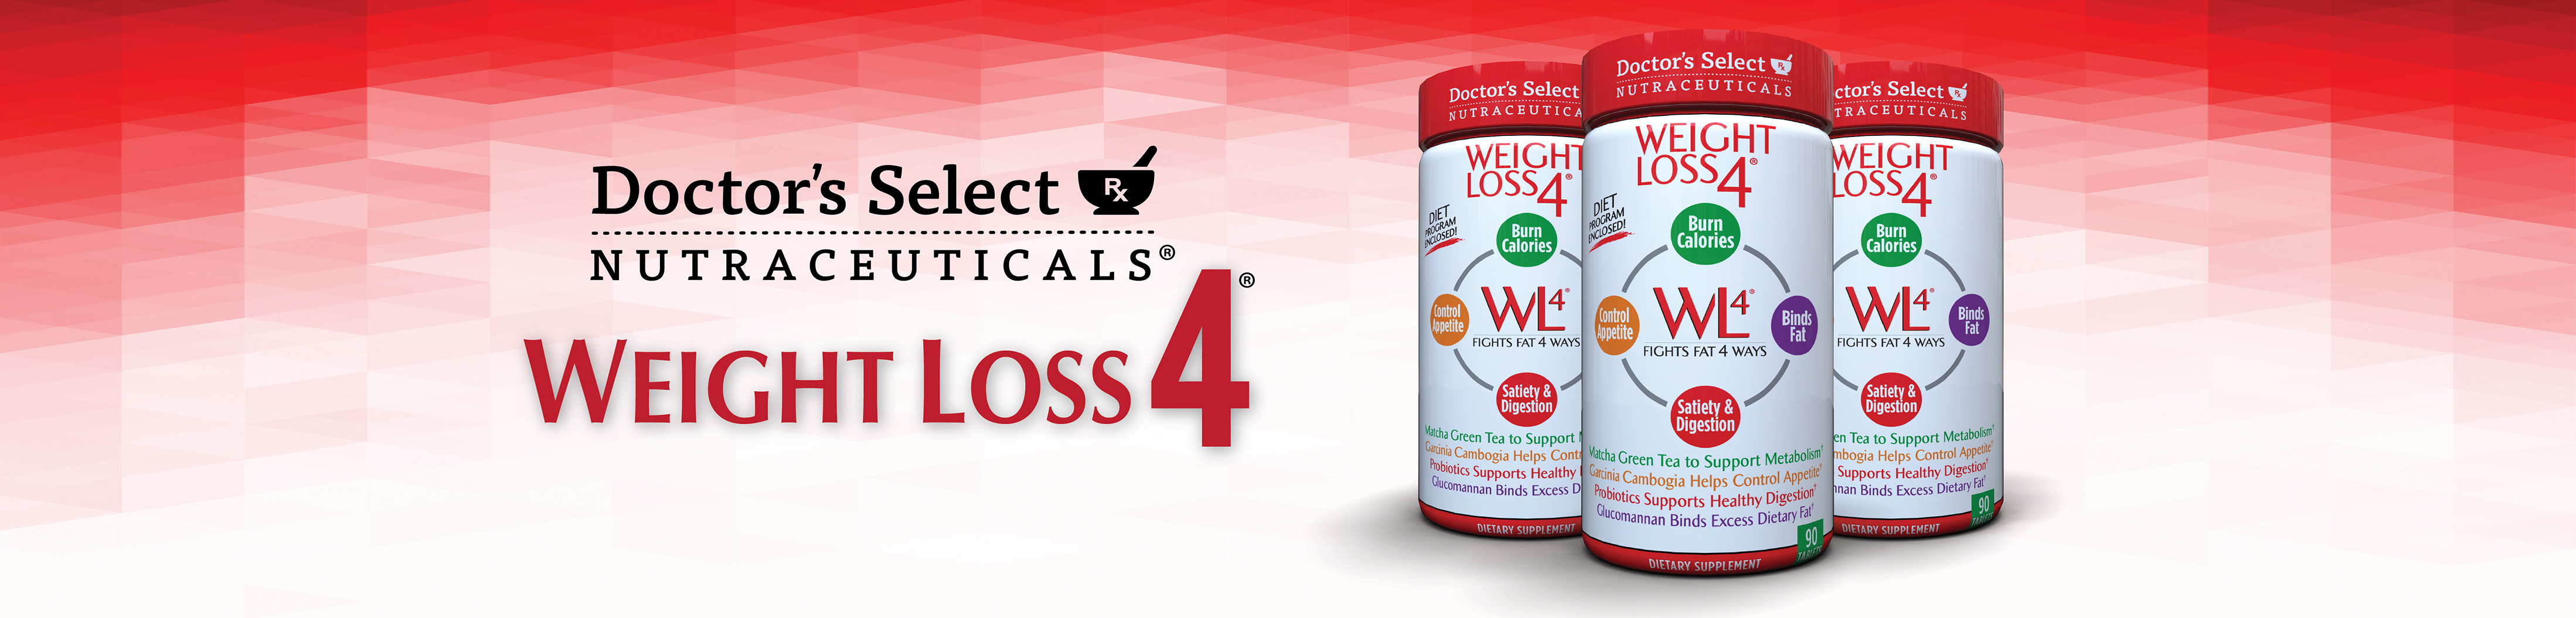 Doctor's Select Nutraceuticals® Weight Loss 4™